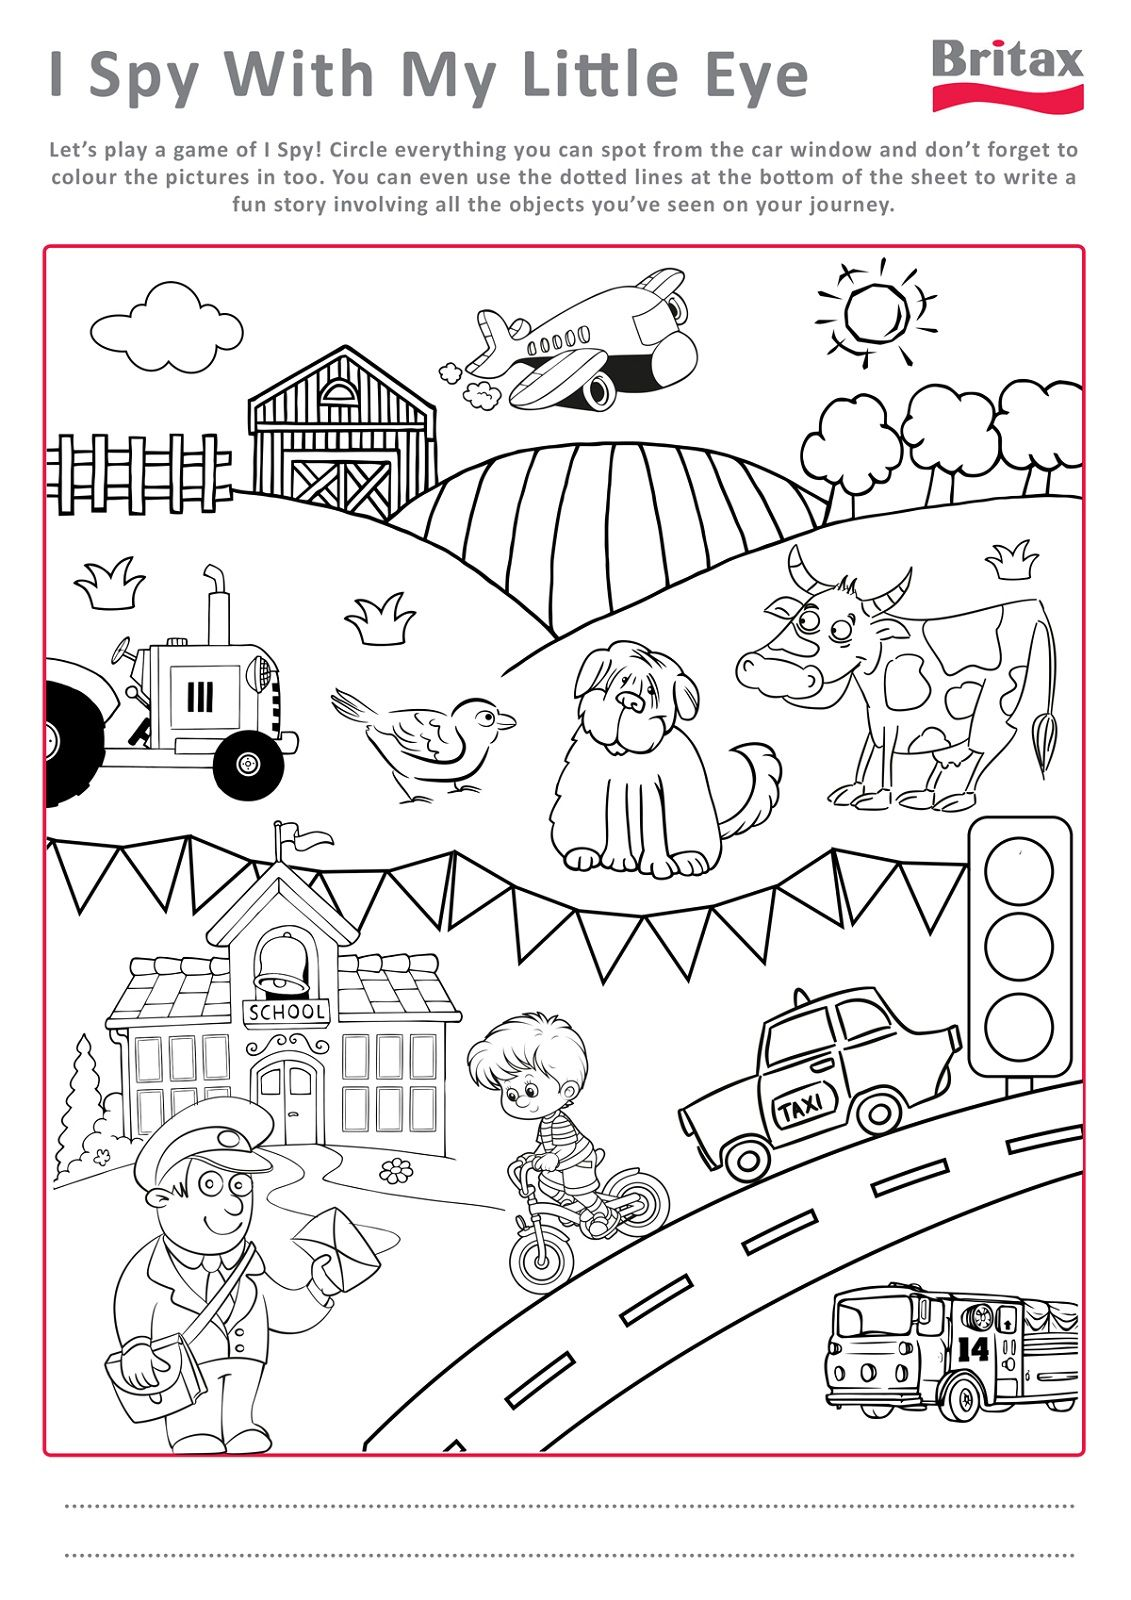 Printable Activity Sheets for Kids | Coloring Pages for Kids ...